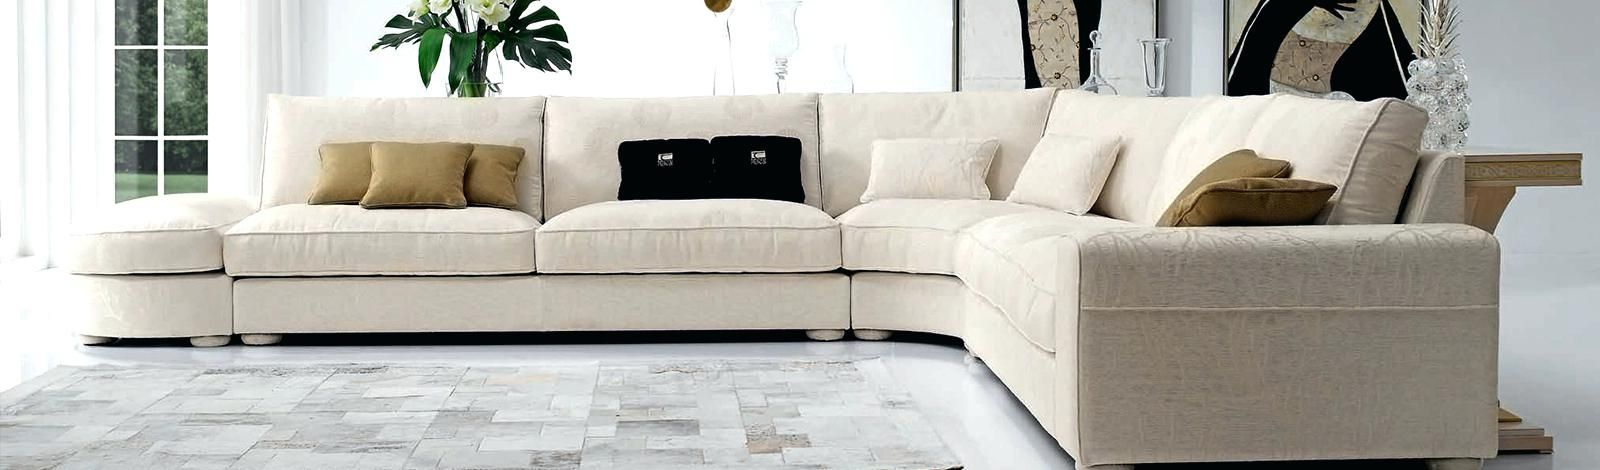 Top Italian Sofa Brands Wwwenergywardennet